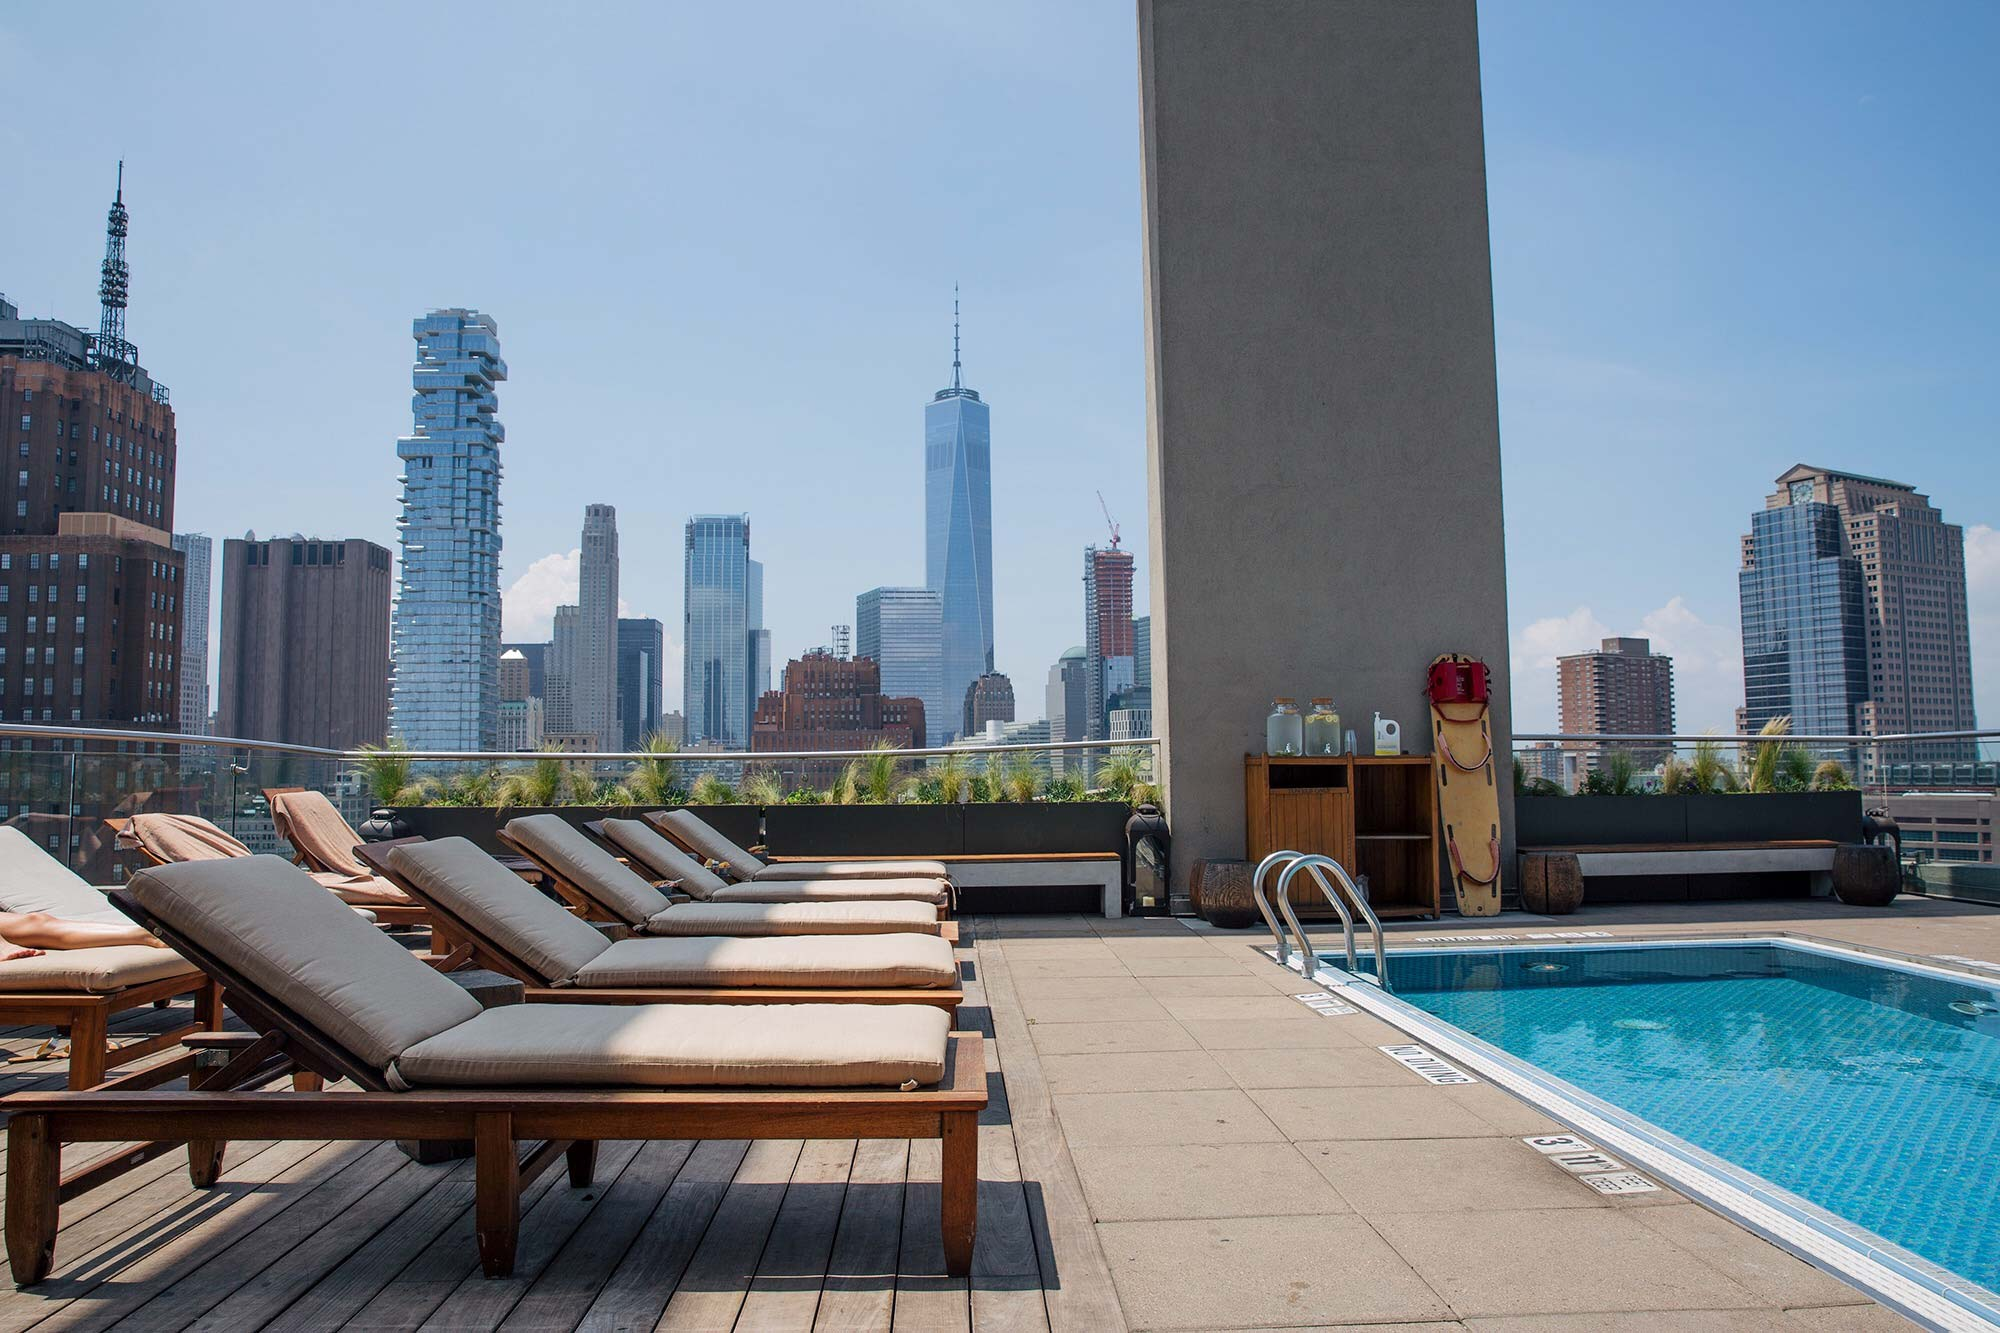 Daycation at The James New York - SoHo